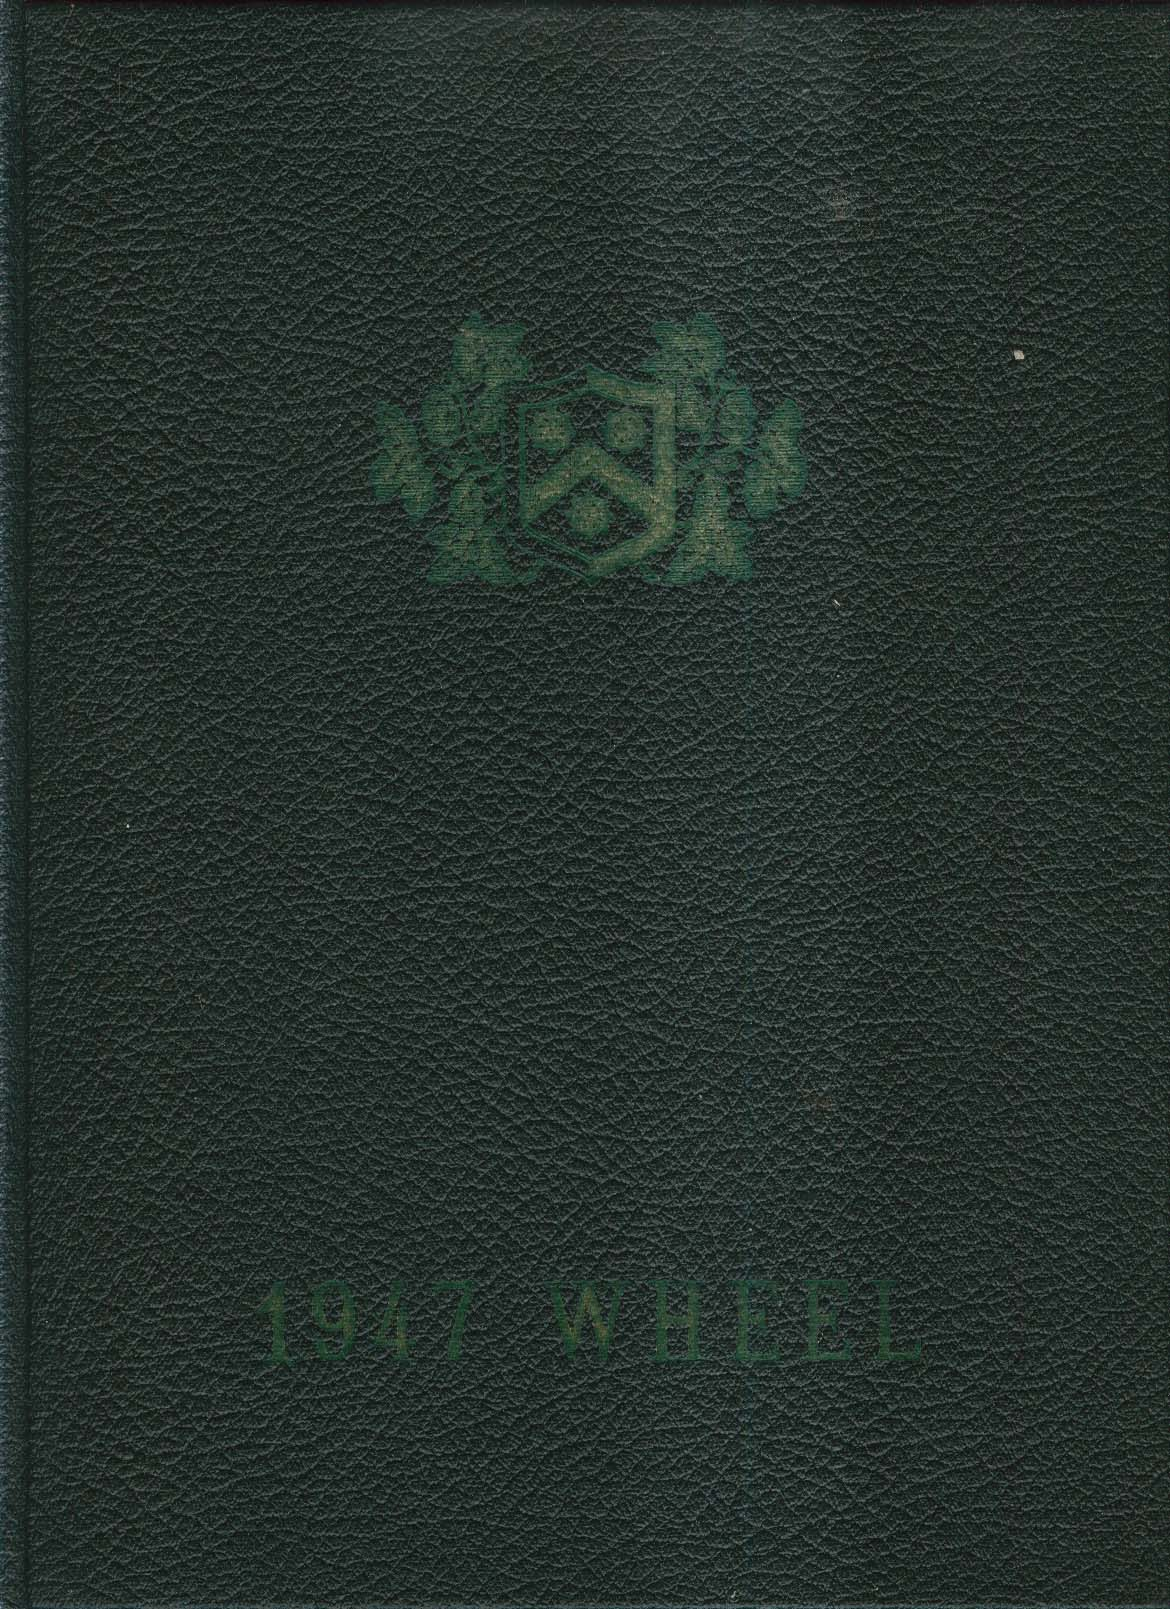 1947 Wheel Wheelock College Boston Massachusetts MA Yearbook